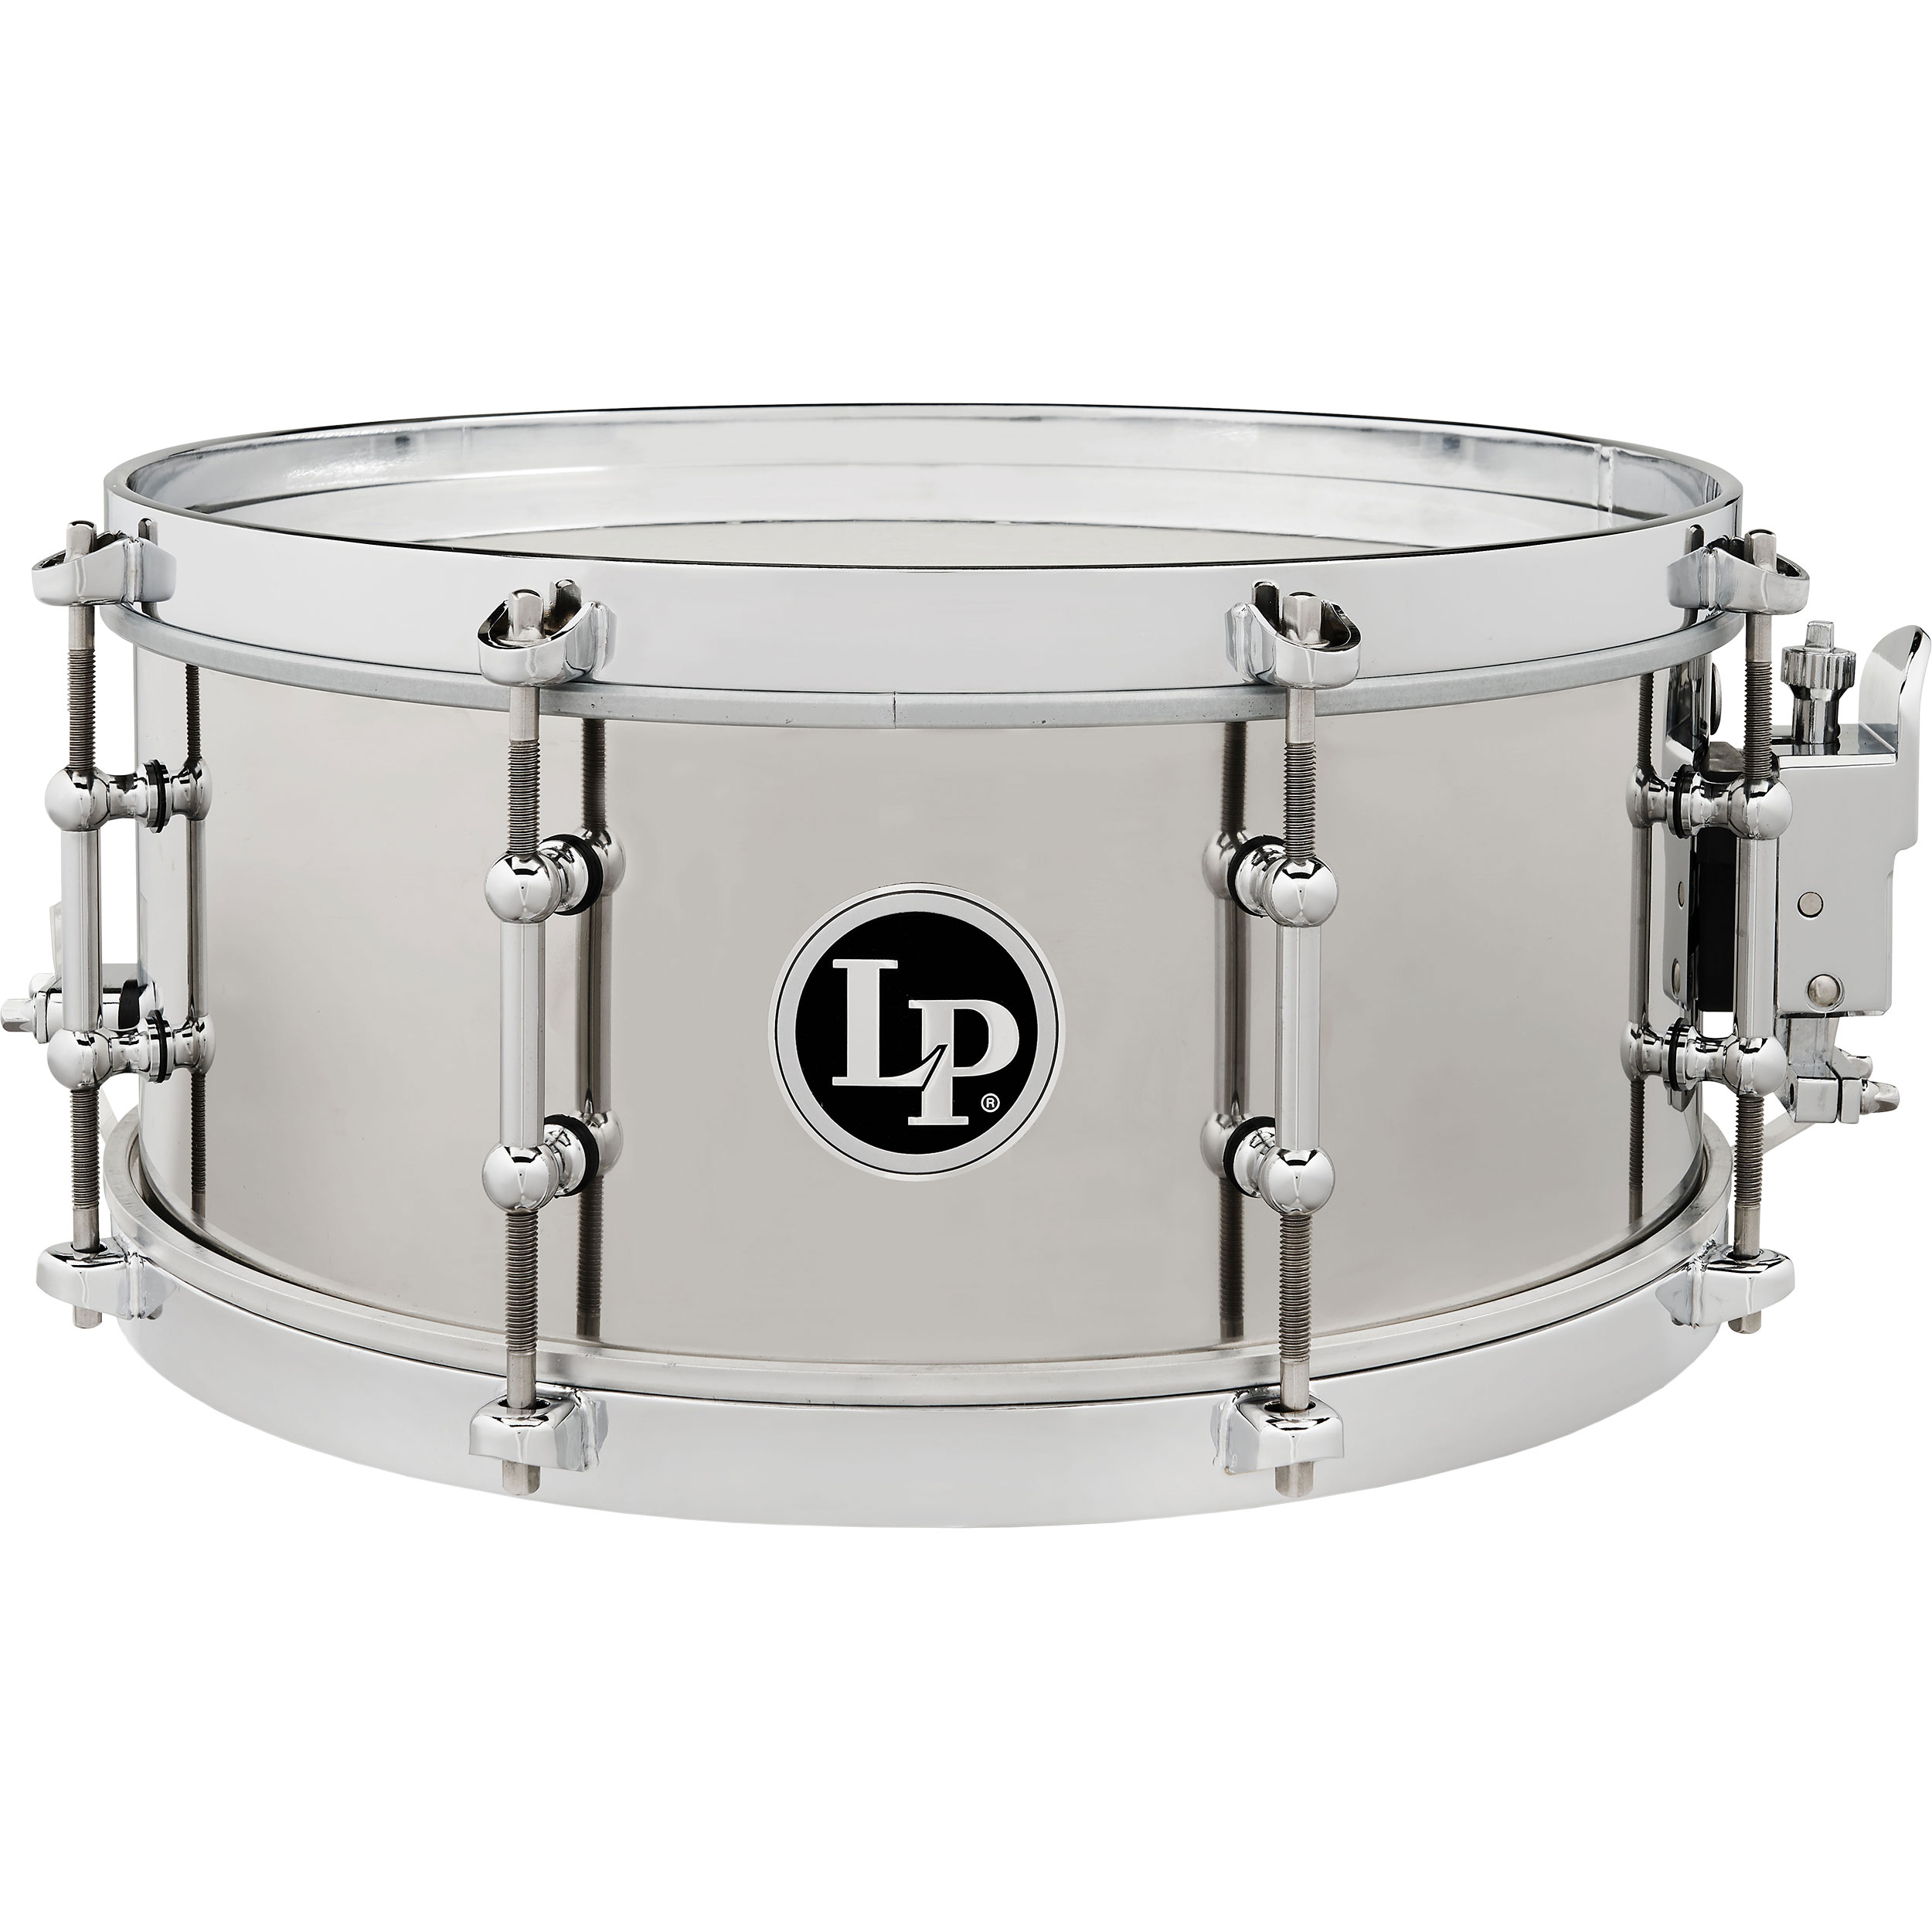 "LP 5.5"" x 13"" Stainless Steel Salsa Snare Drum"